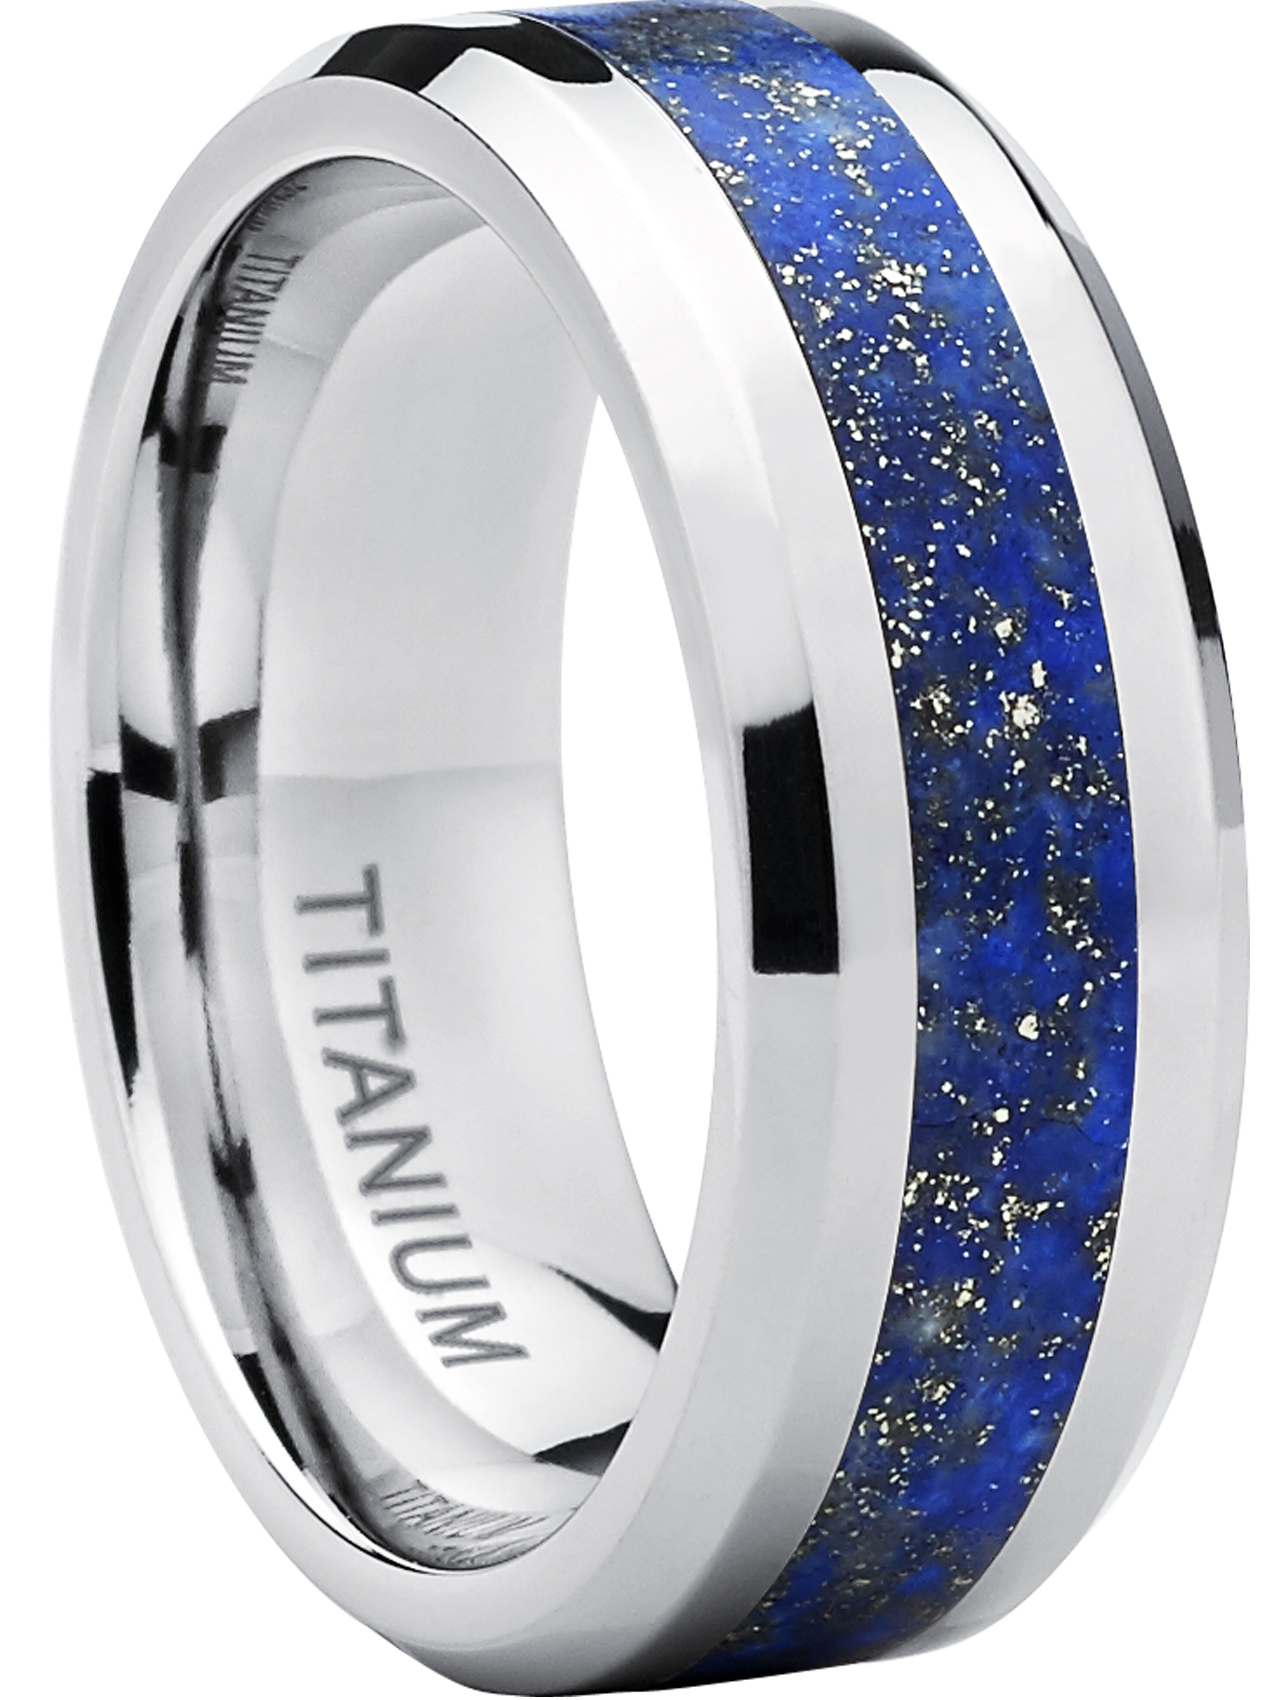 Titanium Ring Wedding Band with Genuine Royal Blue Specks Riverstone